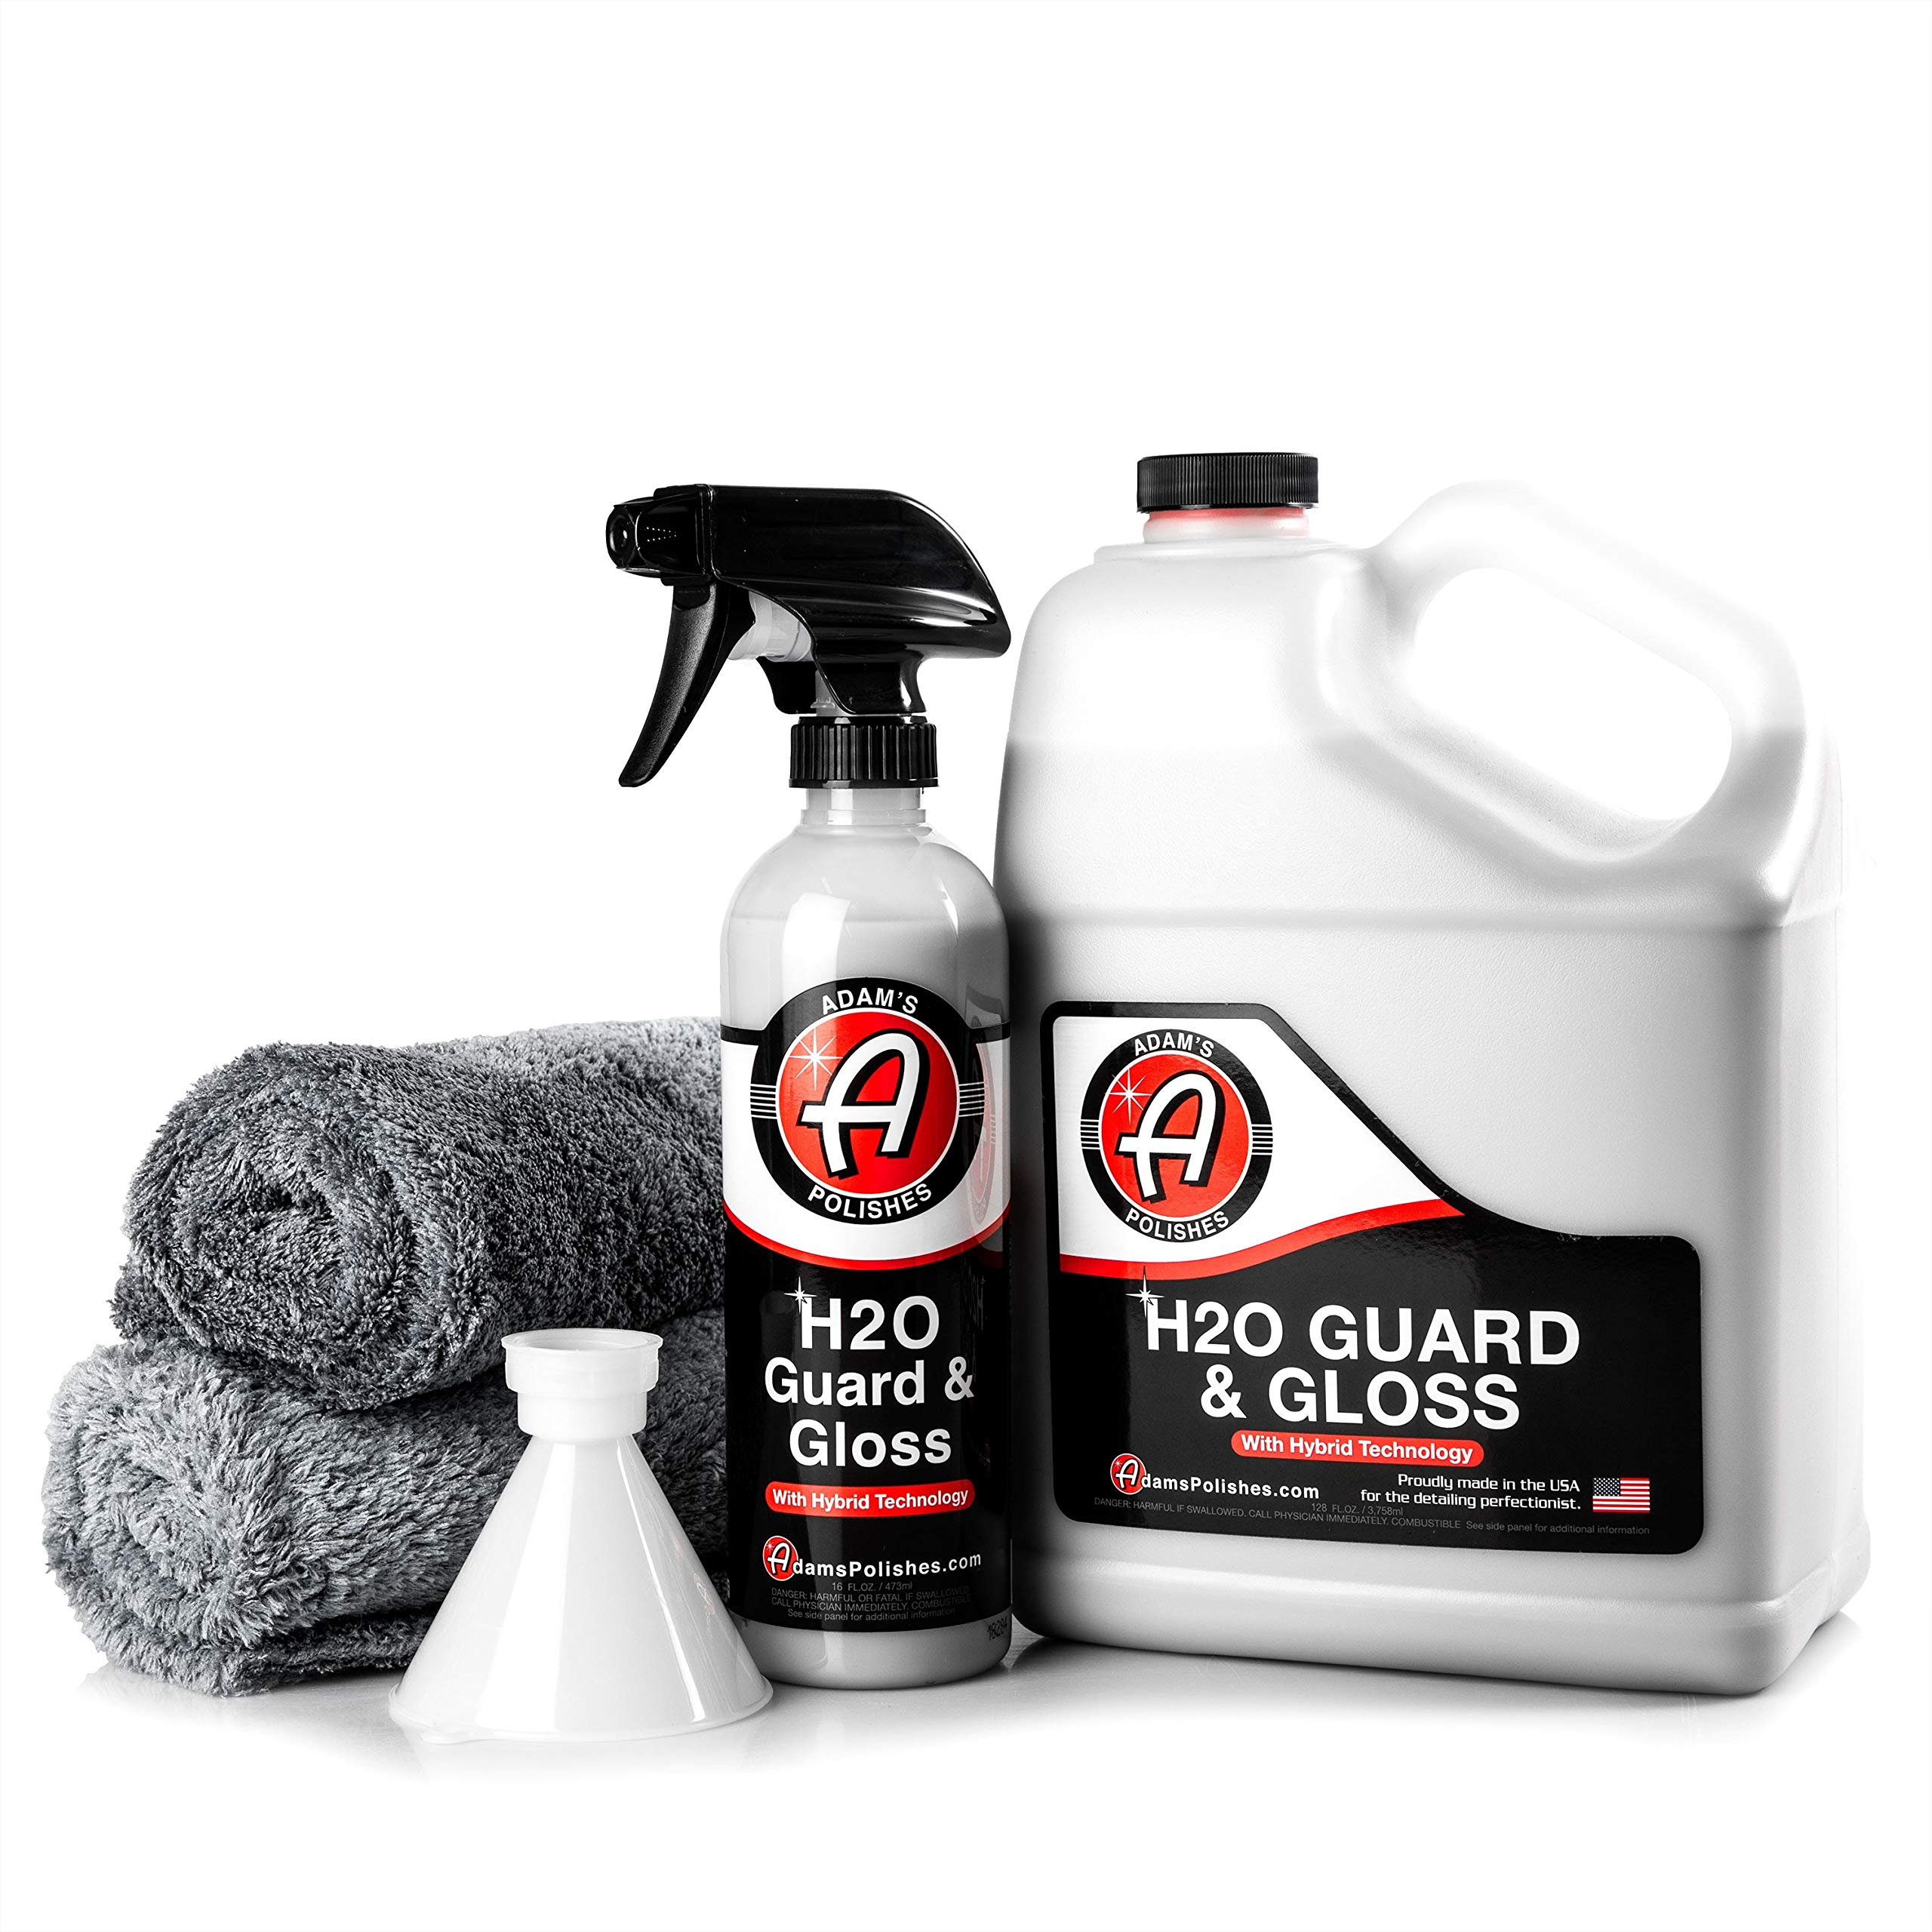 Adam's H2O Guard & Gloss - Revolutionary Hybrid Top Coat Technology Combines Silica Sealant, Polish Wax, and Quick Detailer Technology - Seals, Shines, and Protects All Exterior Surfaces (Collection)